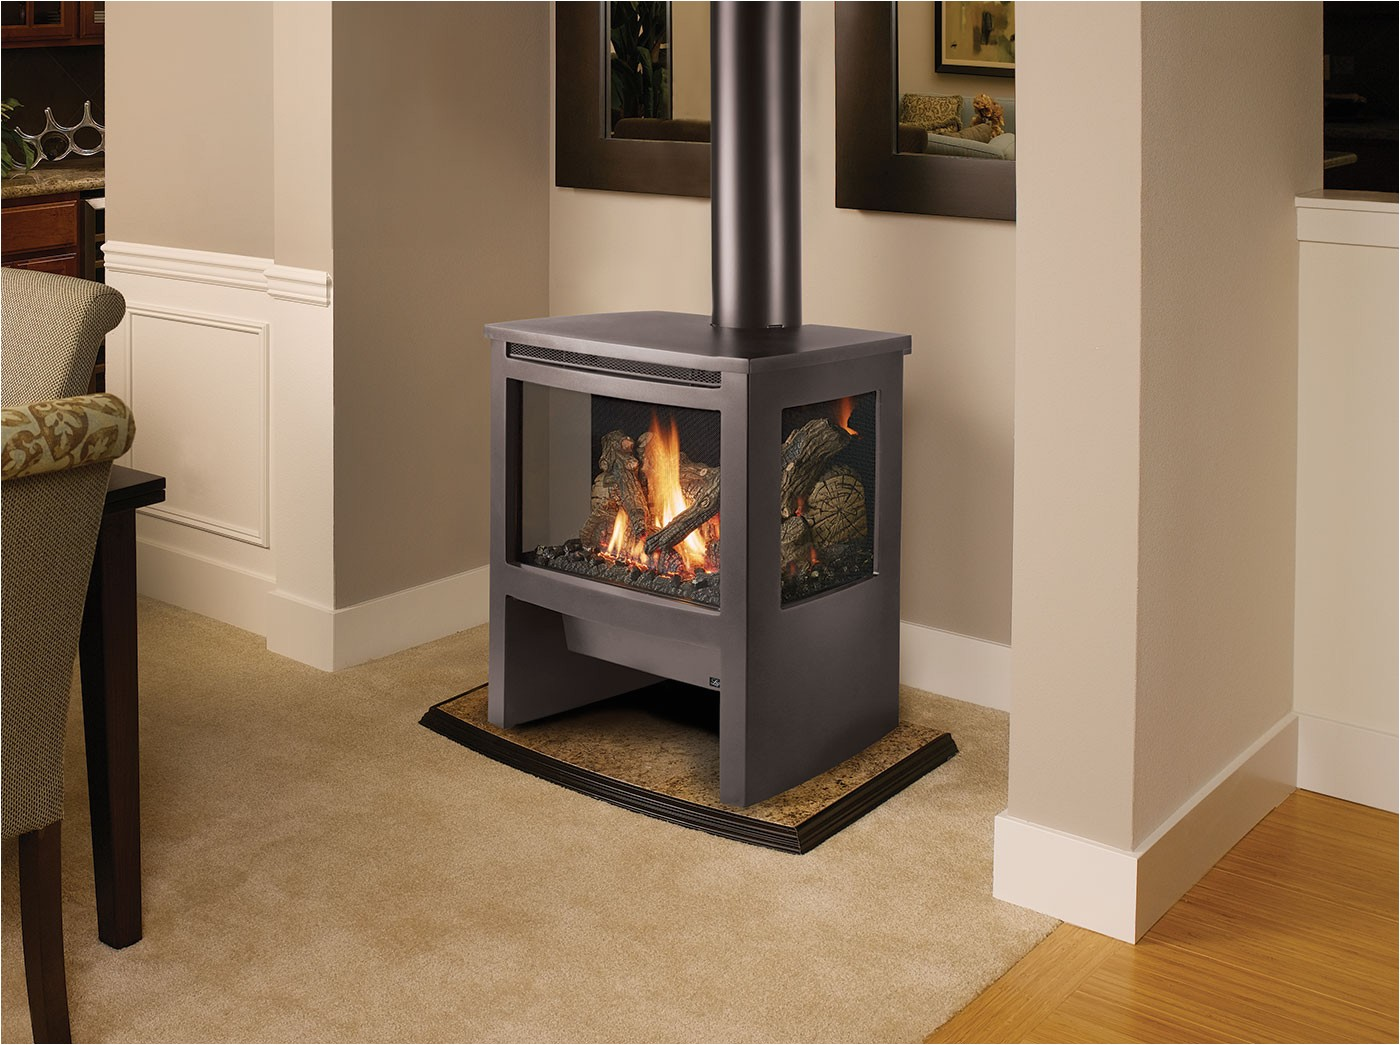 popular lopi s freestanding wood heaters and stove models